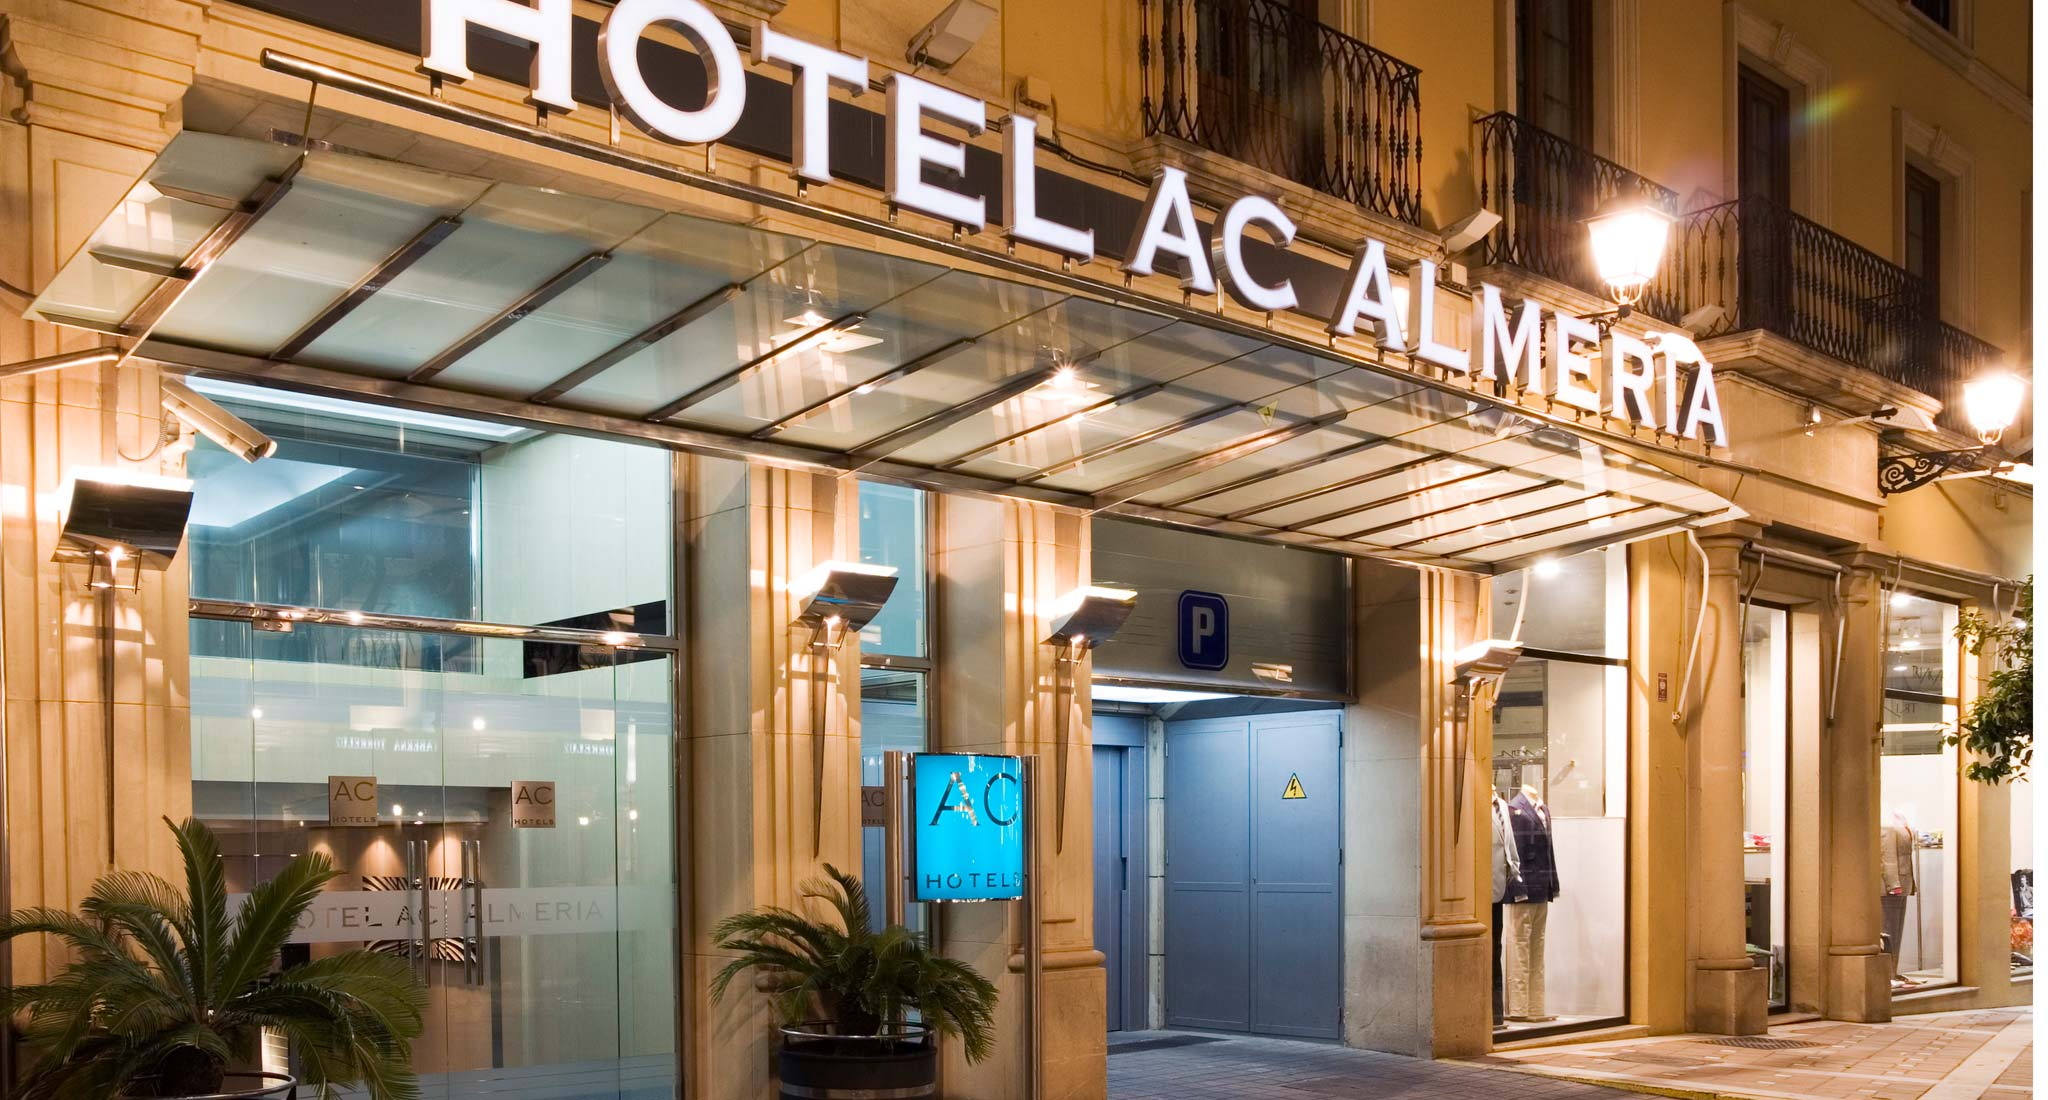 AC Hotel Almería Marriot